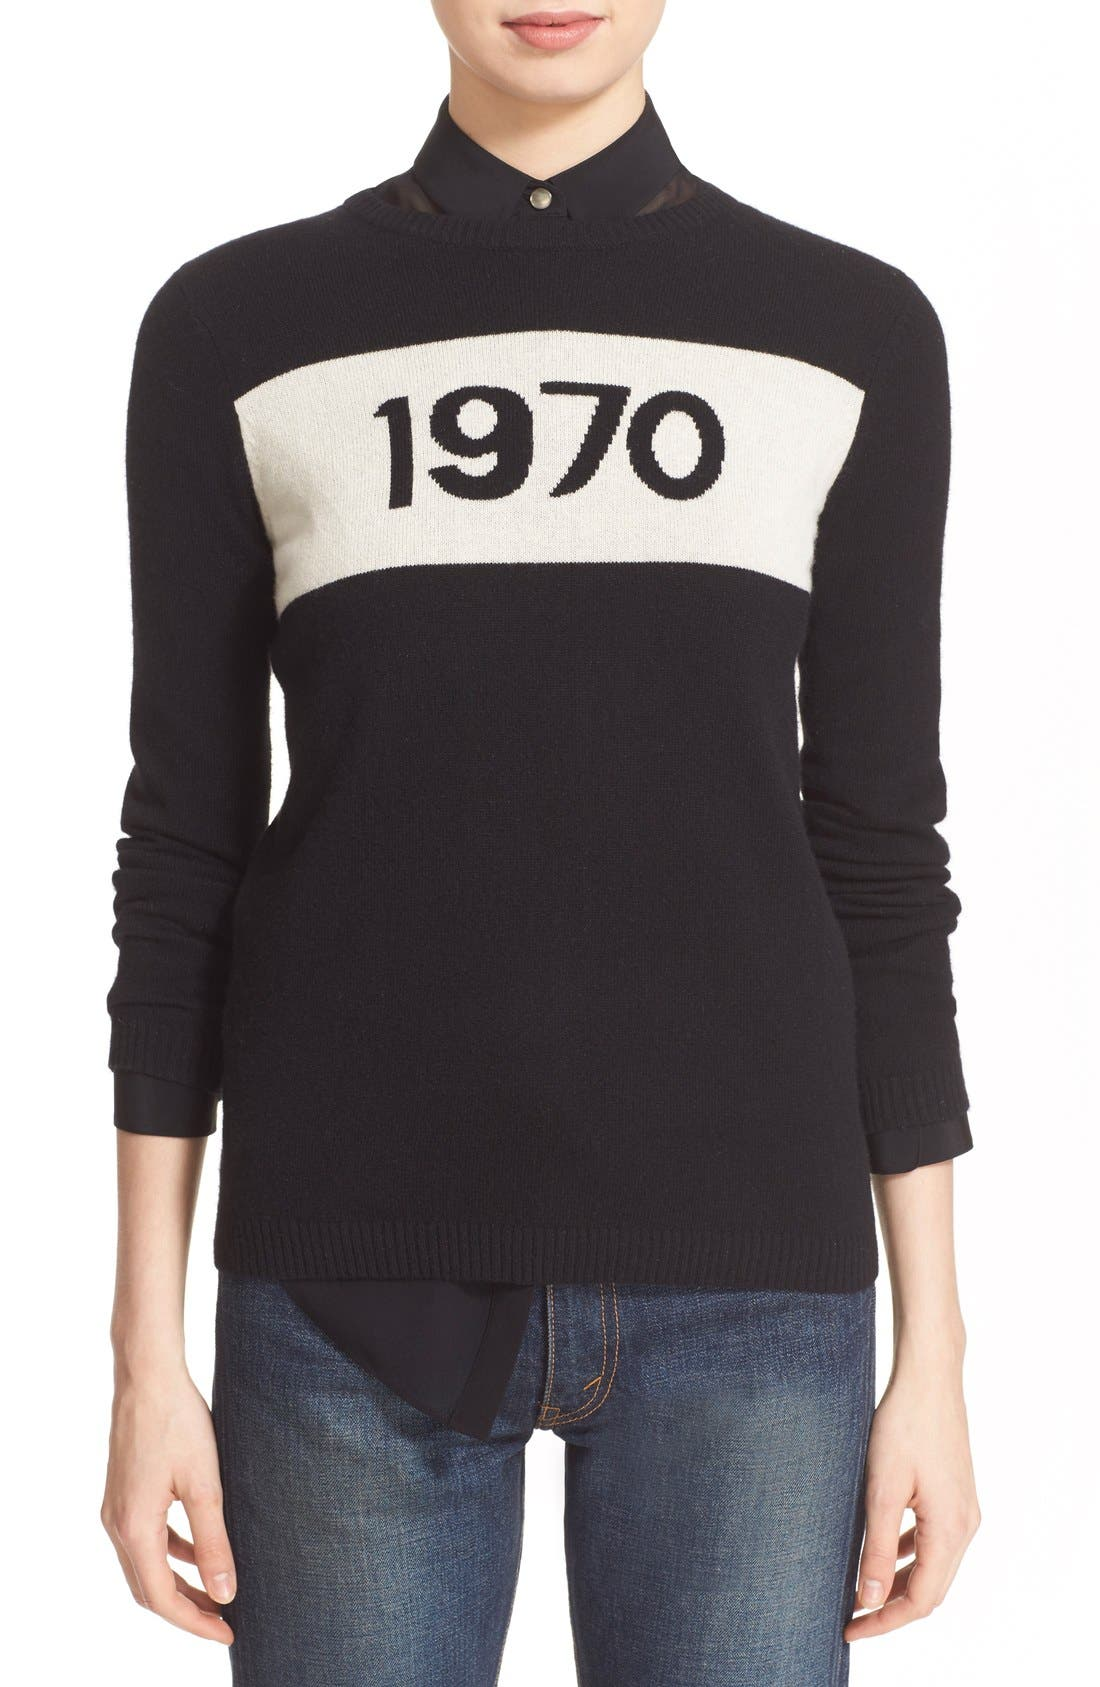 '1970' Wool Sweater,                         Main,                         color, Black